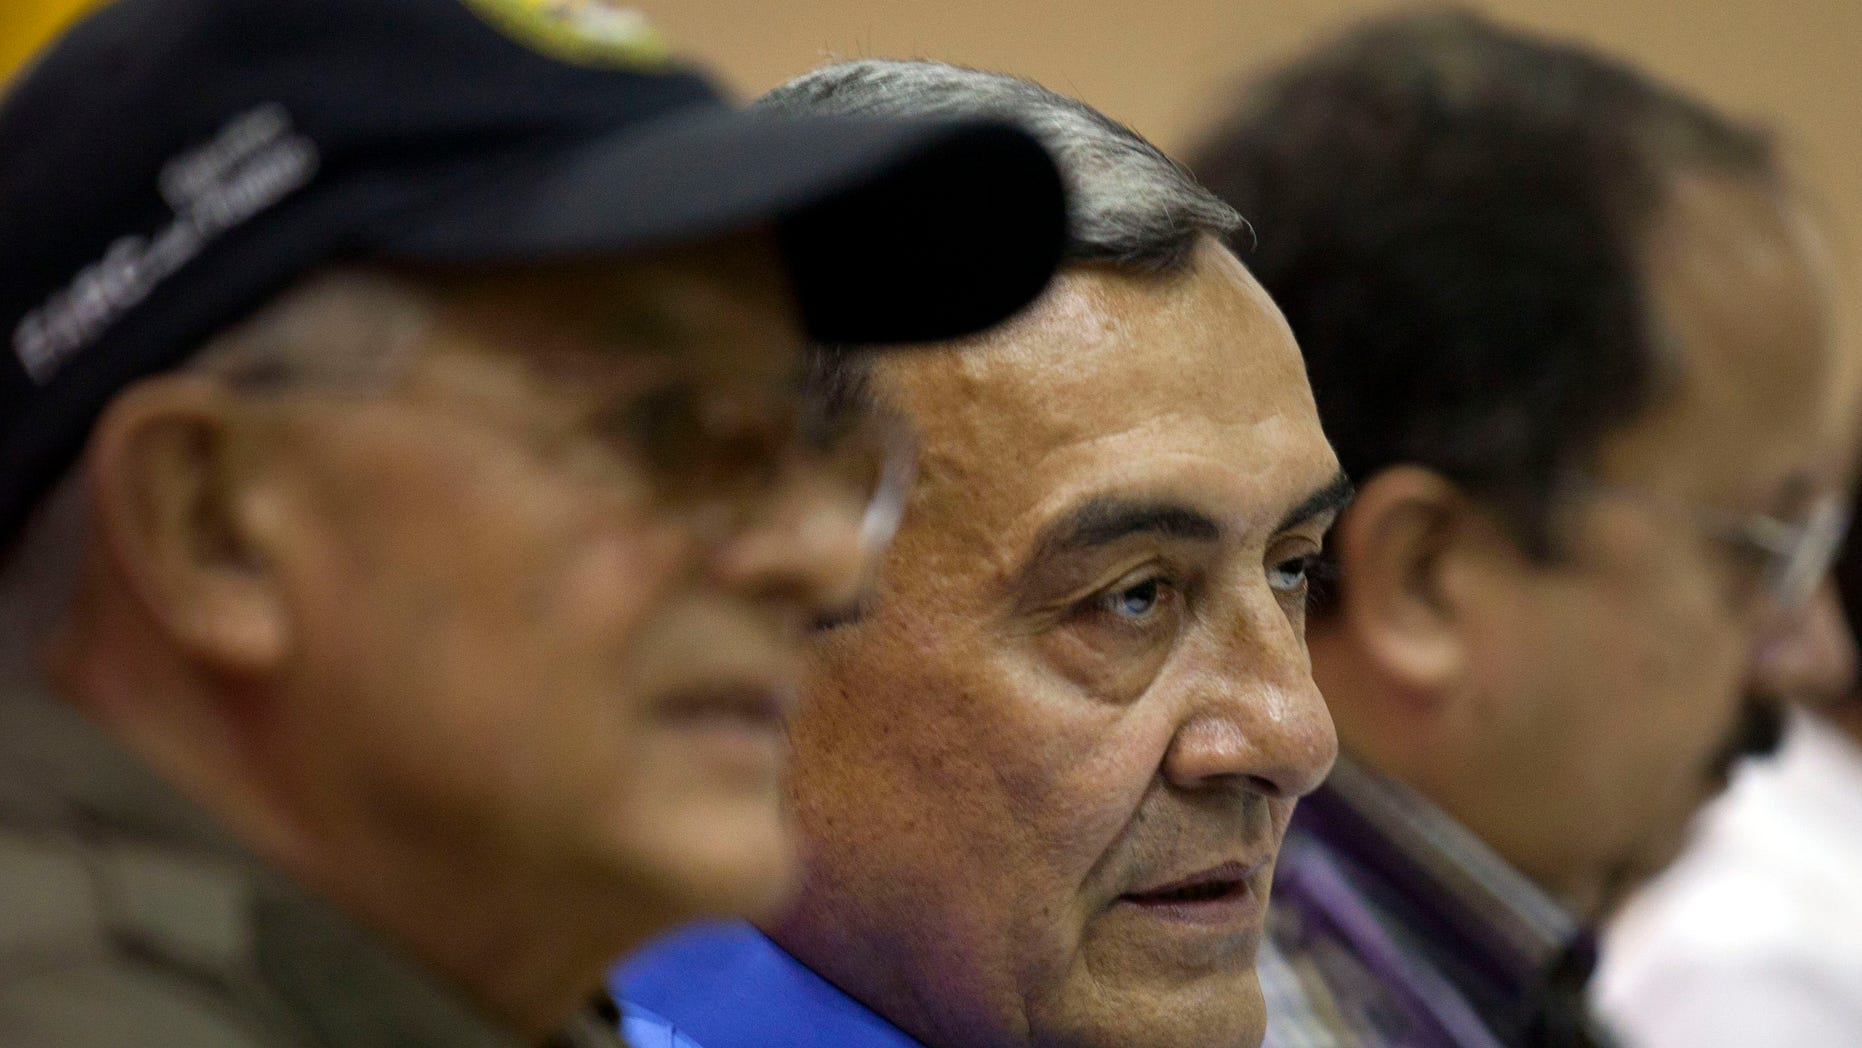 Sept. 6, 2012: Mauricio Jaramillo, a spokesman and top leader of the Revolutionary Armed Forces of Colombia, or FARC, attends a press conference with other FARC members in Havana, Cuba.